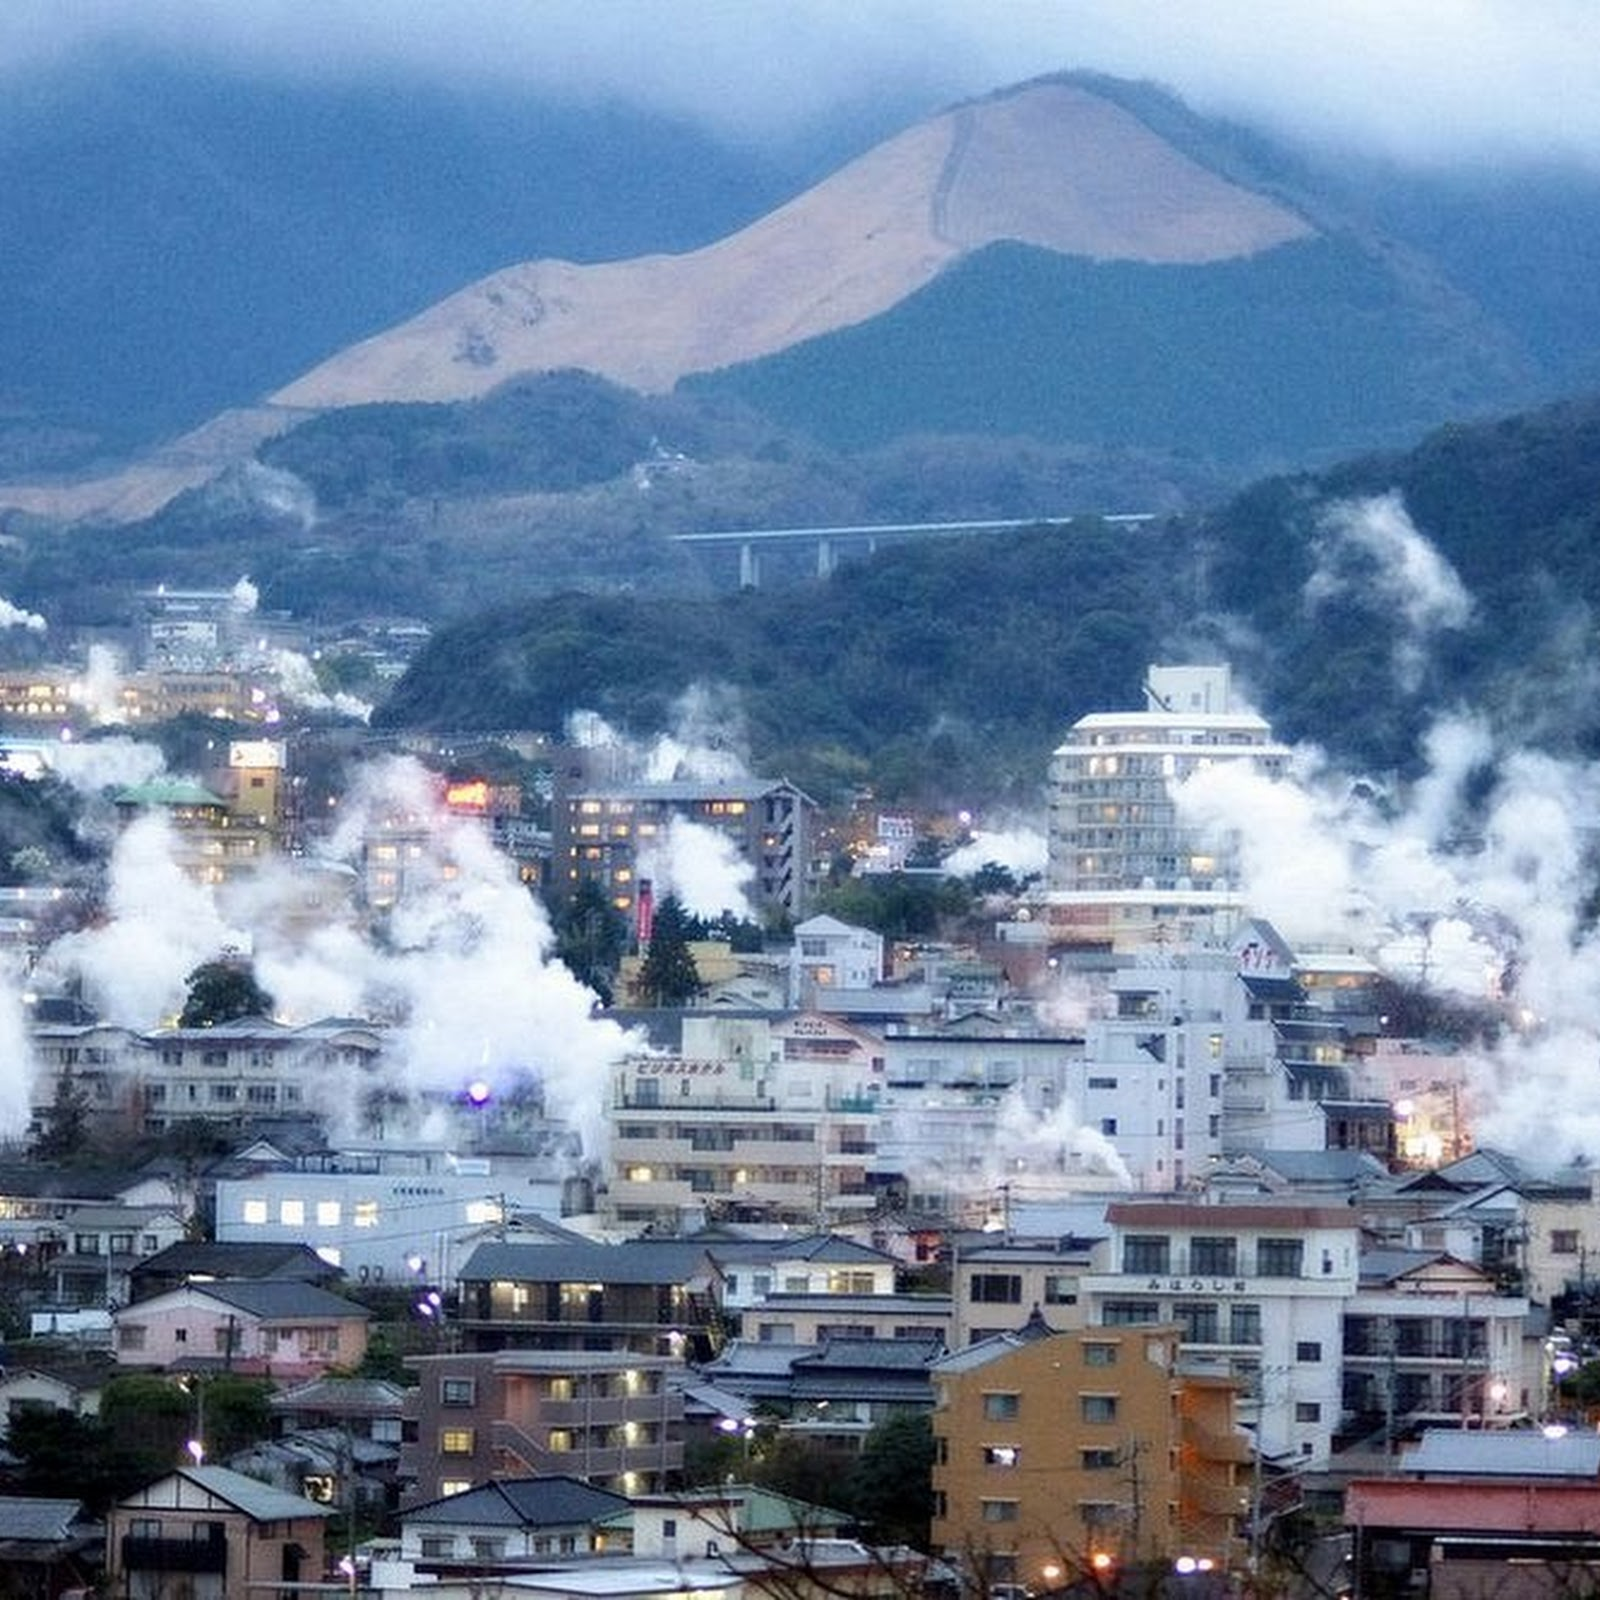 The Smoking Hot Springs of Beppu, Japan